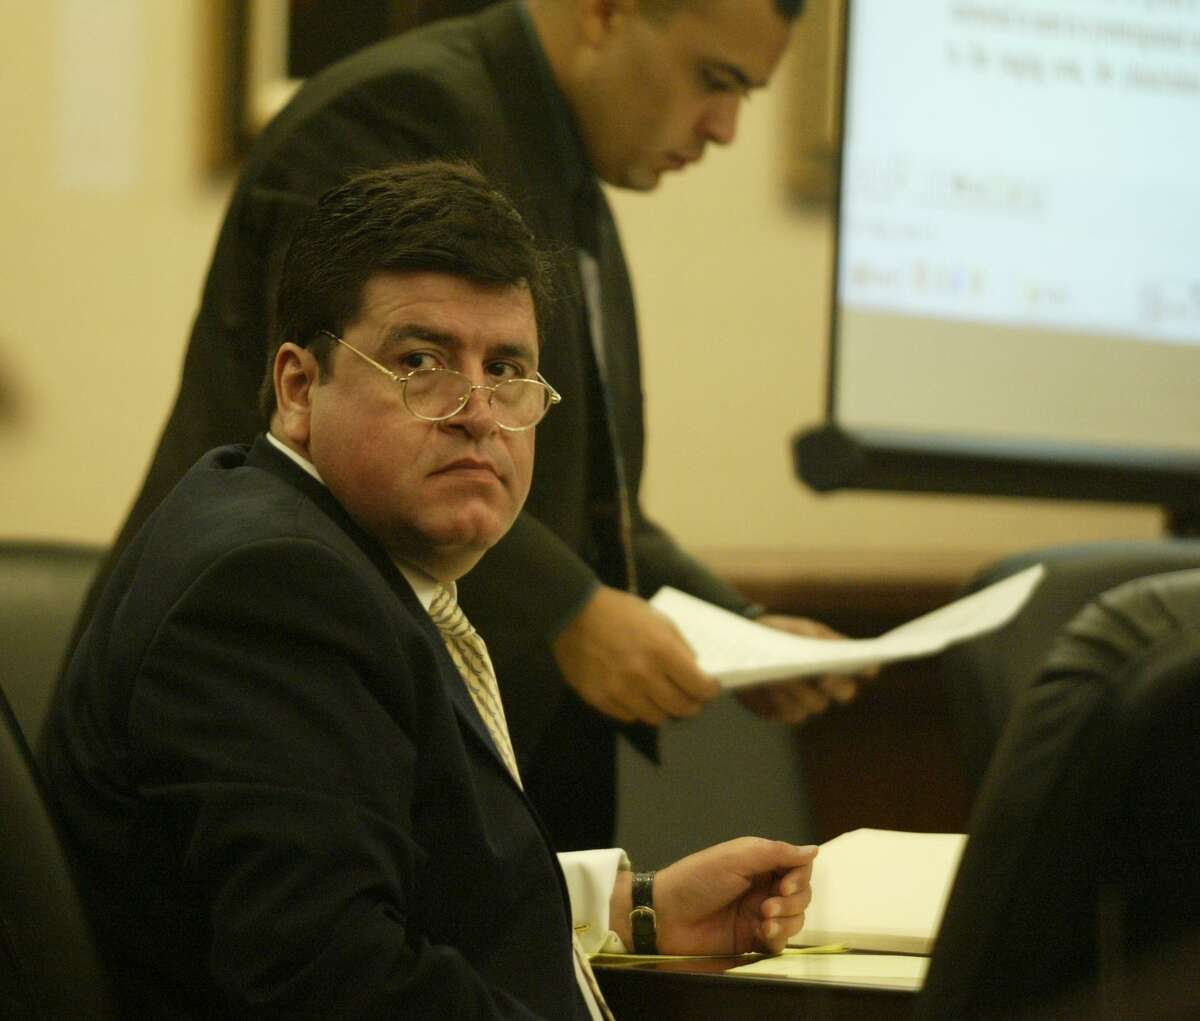 Former HPD Capt. Mark Aguirre, shown in this 2003 photo, is accused of aggravated assault with a deadly weapon for an incident in which he pulled over an air conditioning repairman and held him at gunpoint believing the man had 750,000 fraudulent mail-in ballots.